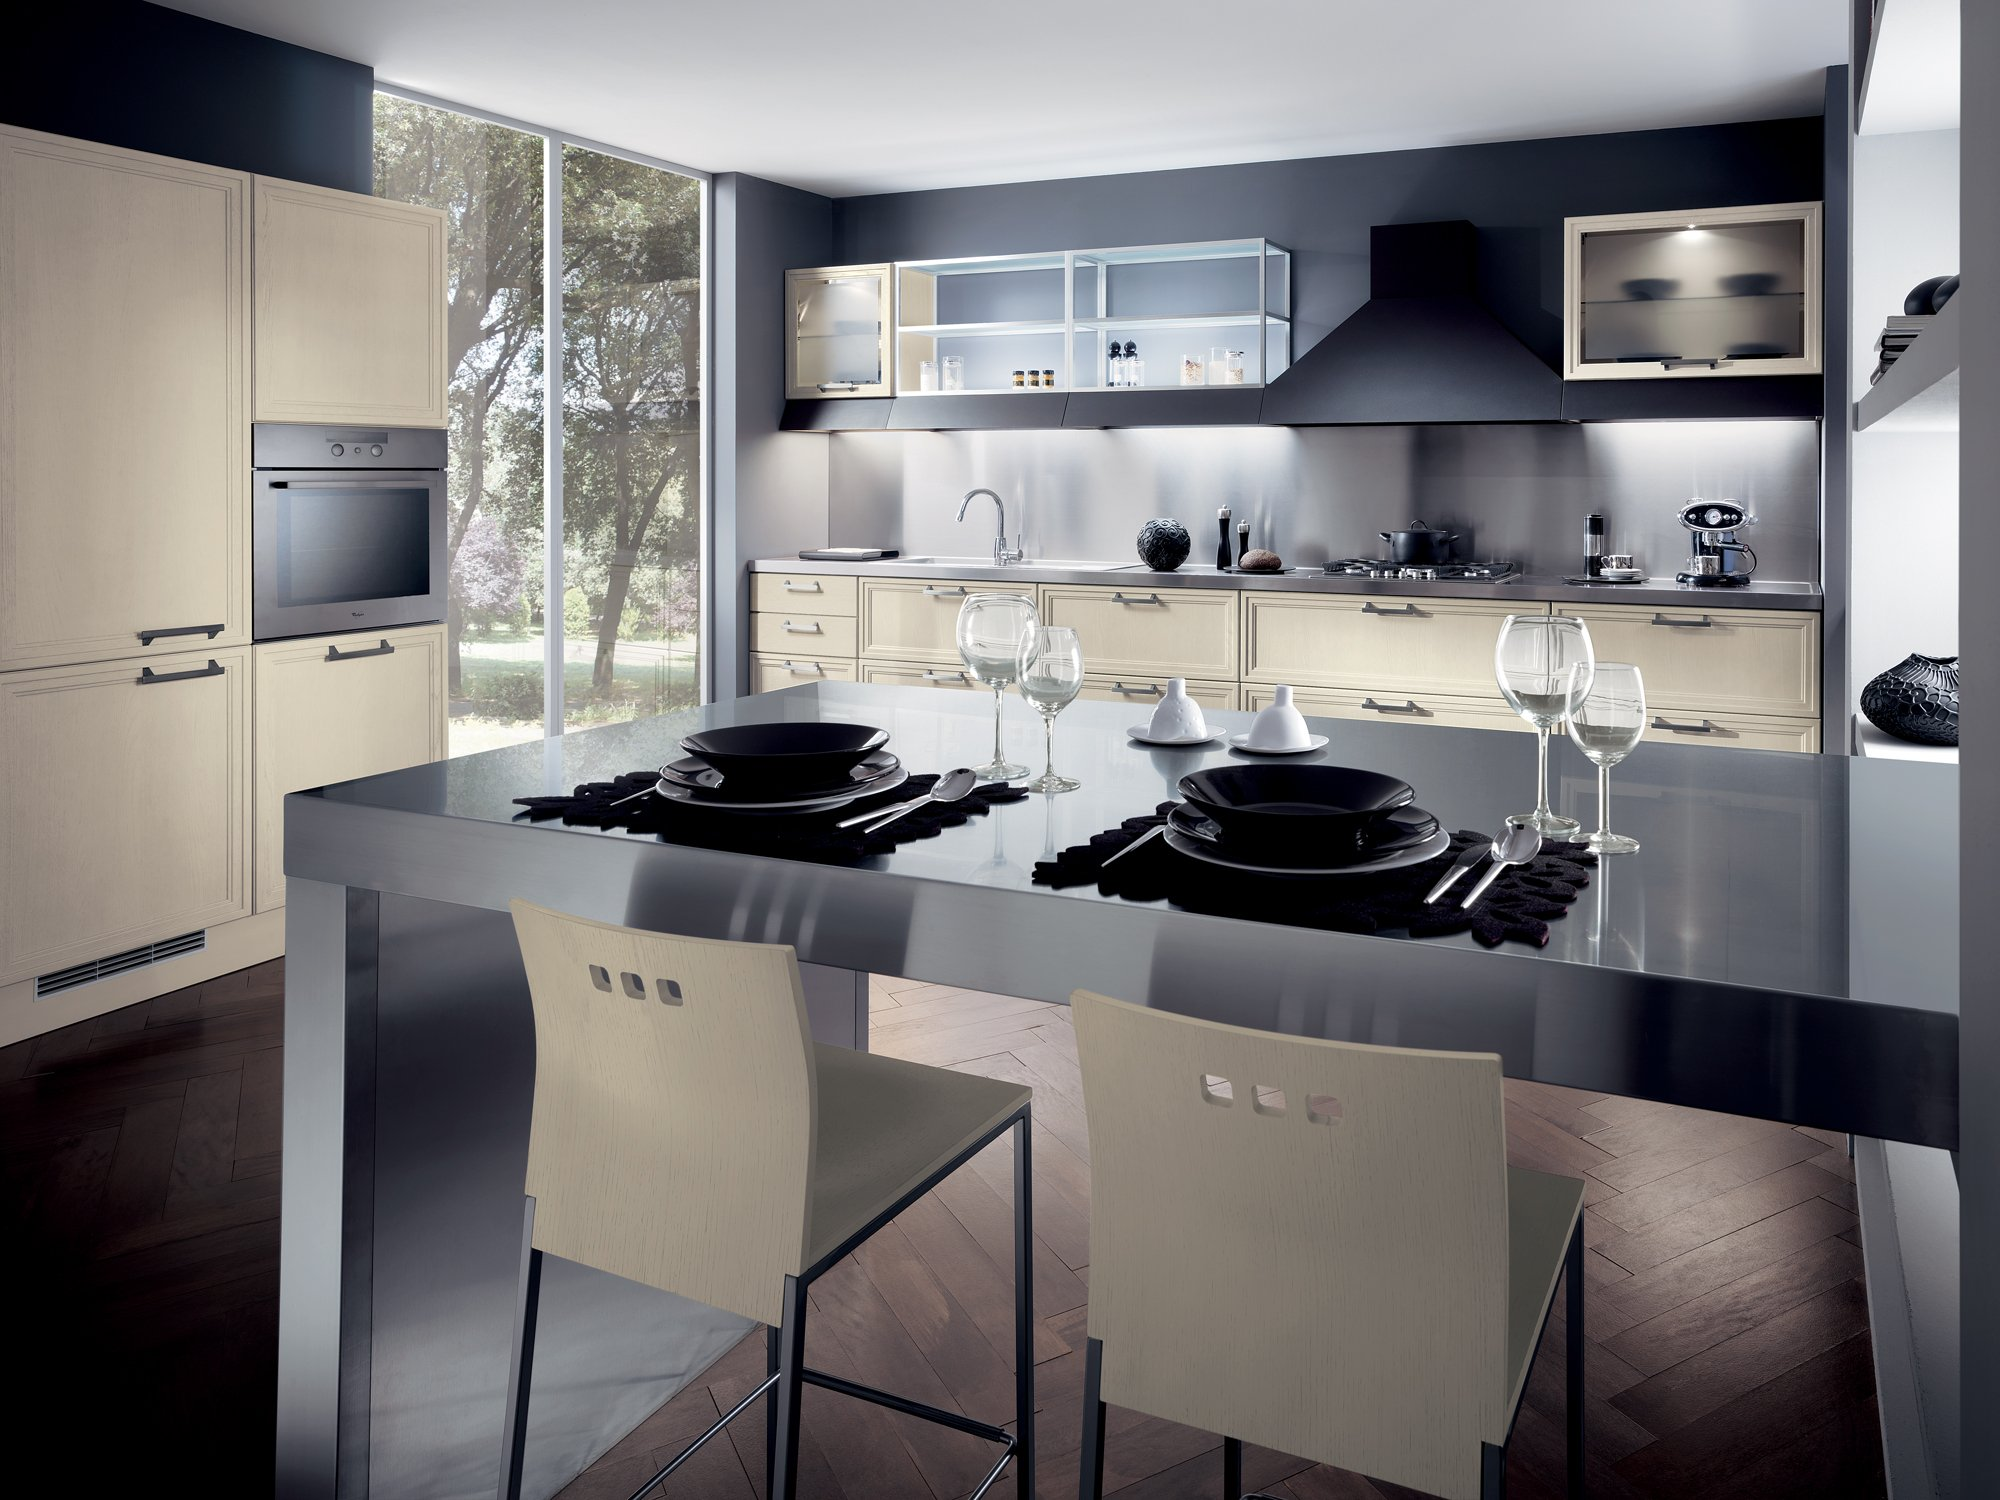 Cucina componibile focus linea scavolini by scavolini for Accessori cucina design